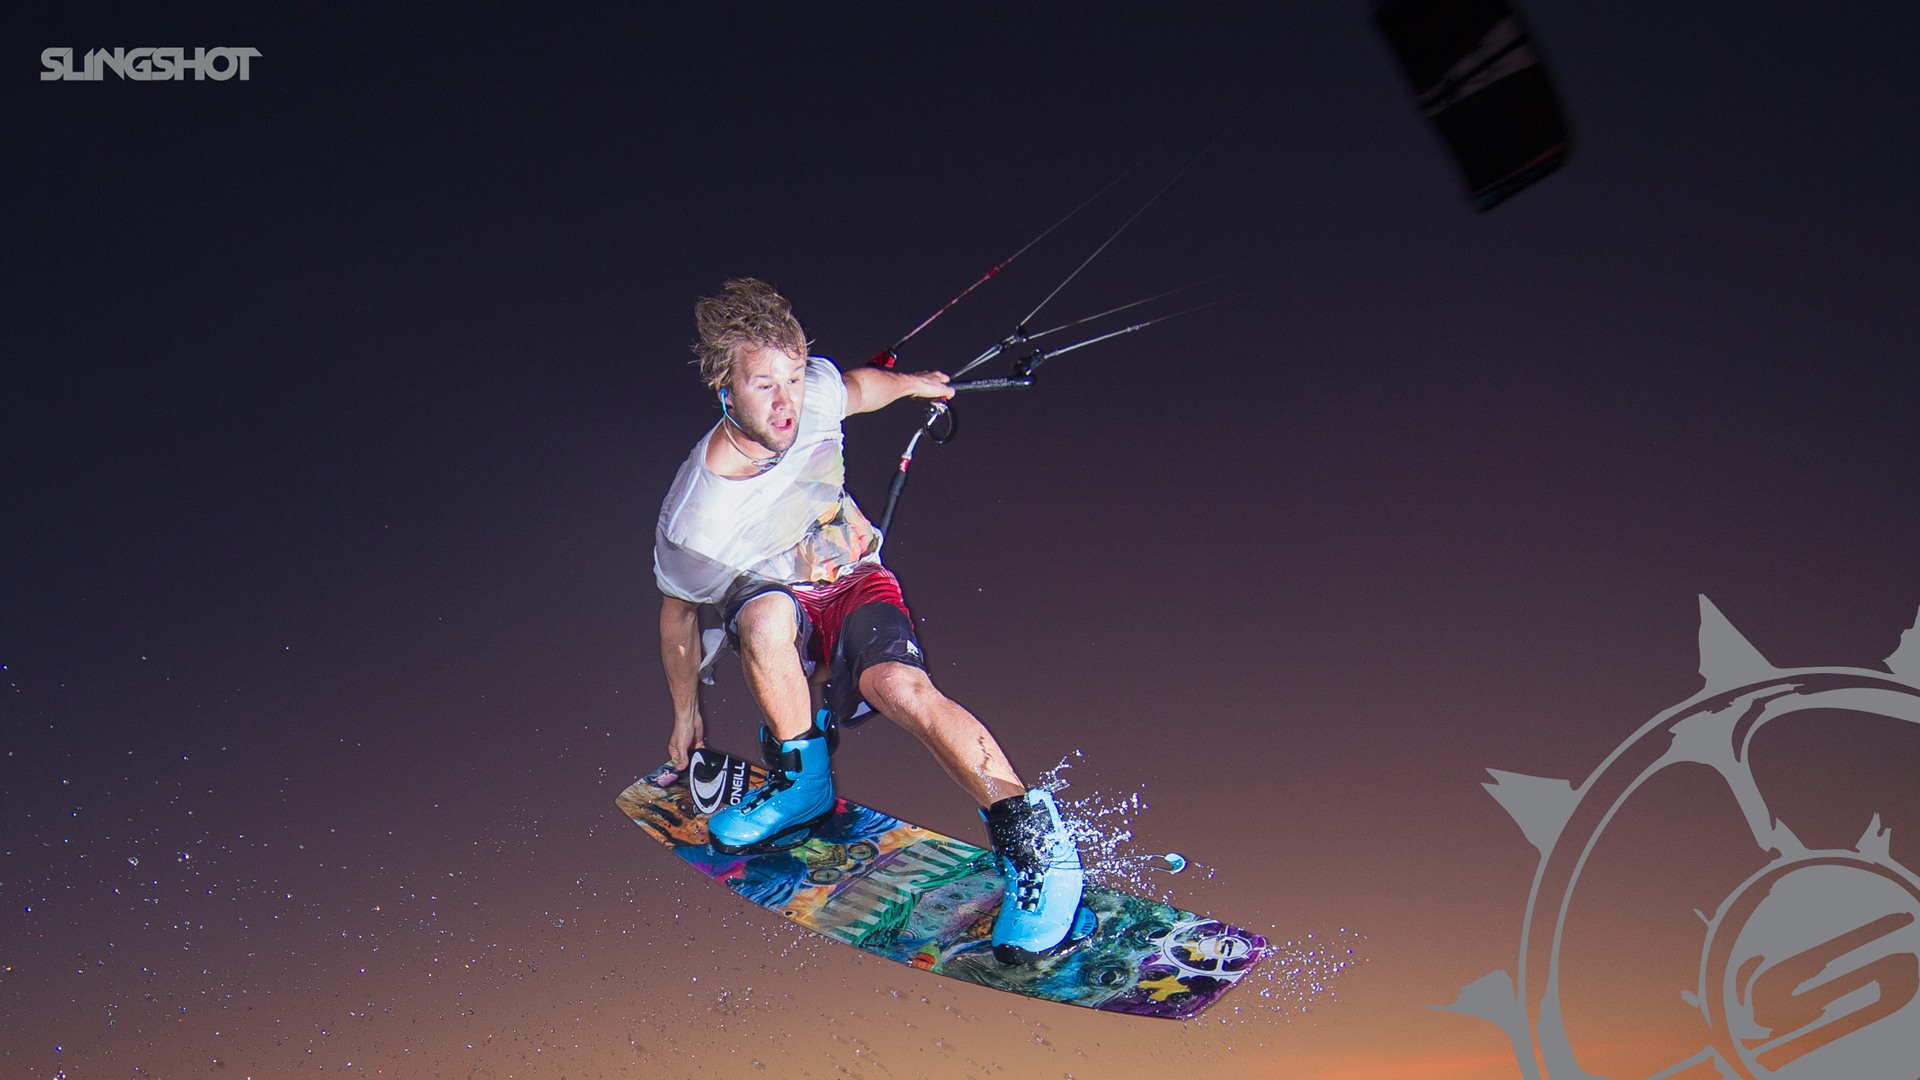 kitesurf wallpaper image - Sam Light feeling his way around in the dark on the 2015 Slingshot Vision board and Fuel - in resolution: High Definition - HD 16:9 1920 X 1080